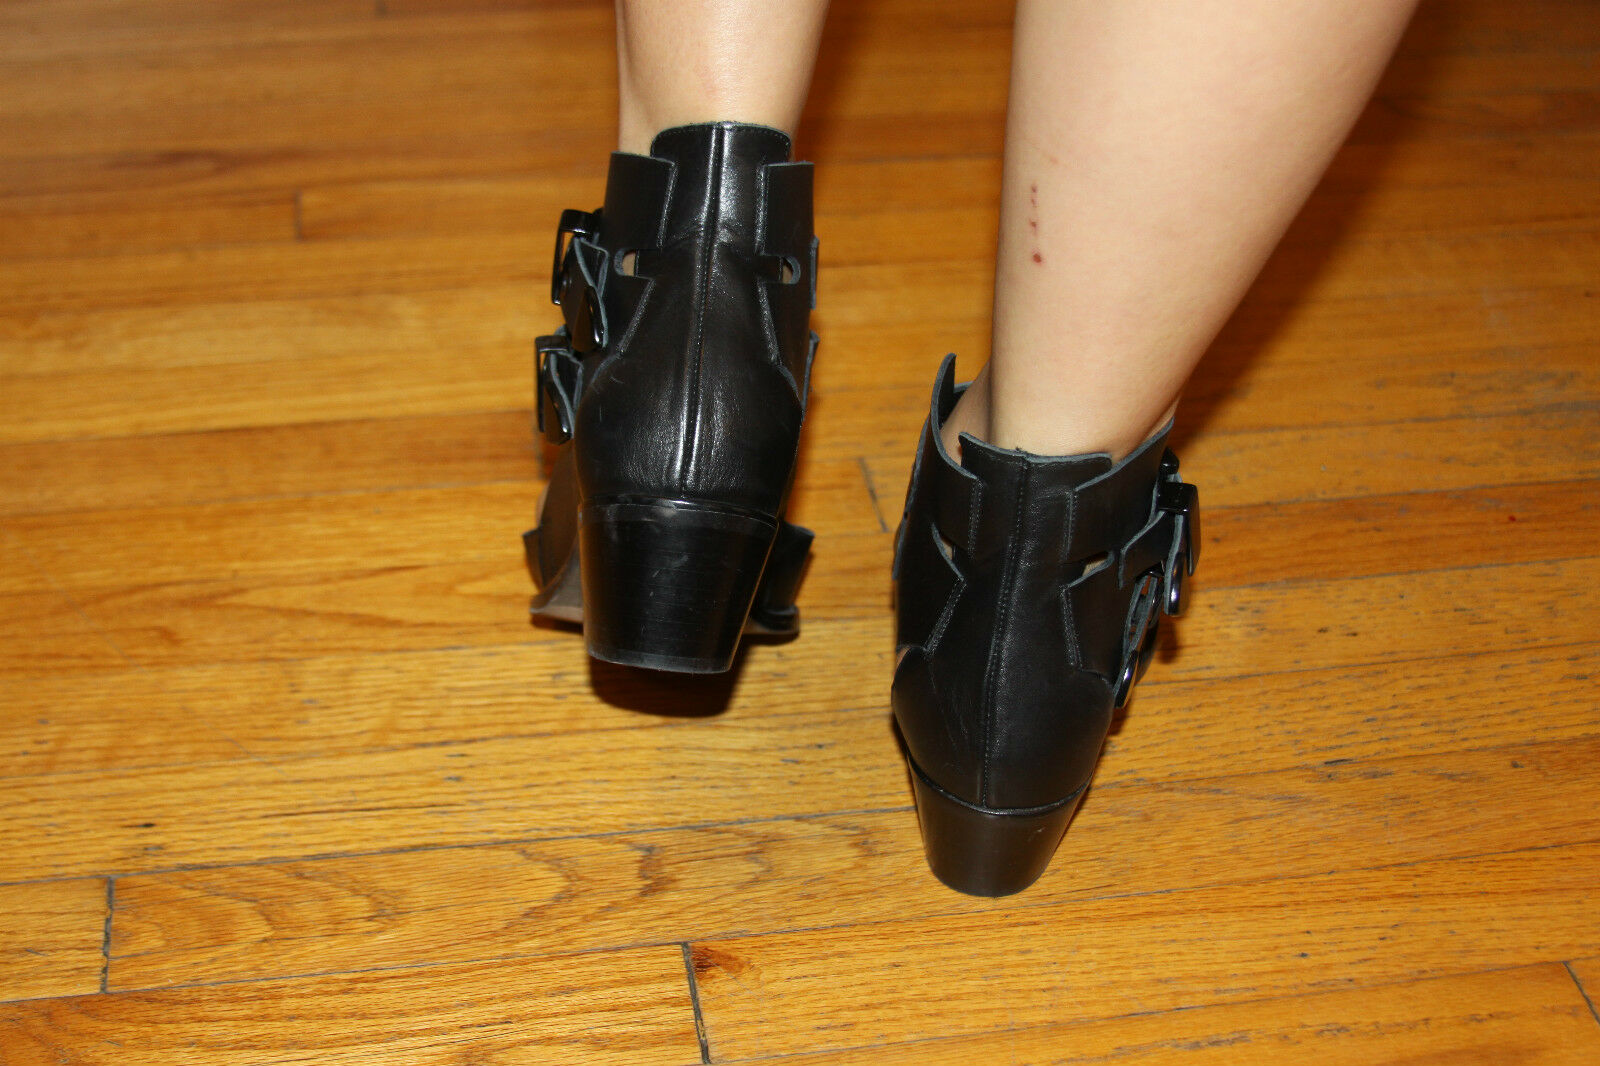 INTENTIONALLY CUT-OUT BOOTIE SZ 8 - image 4